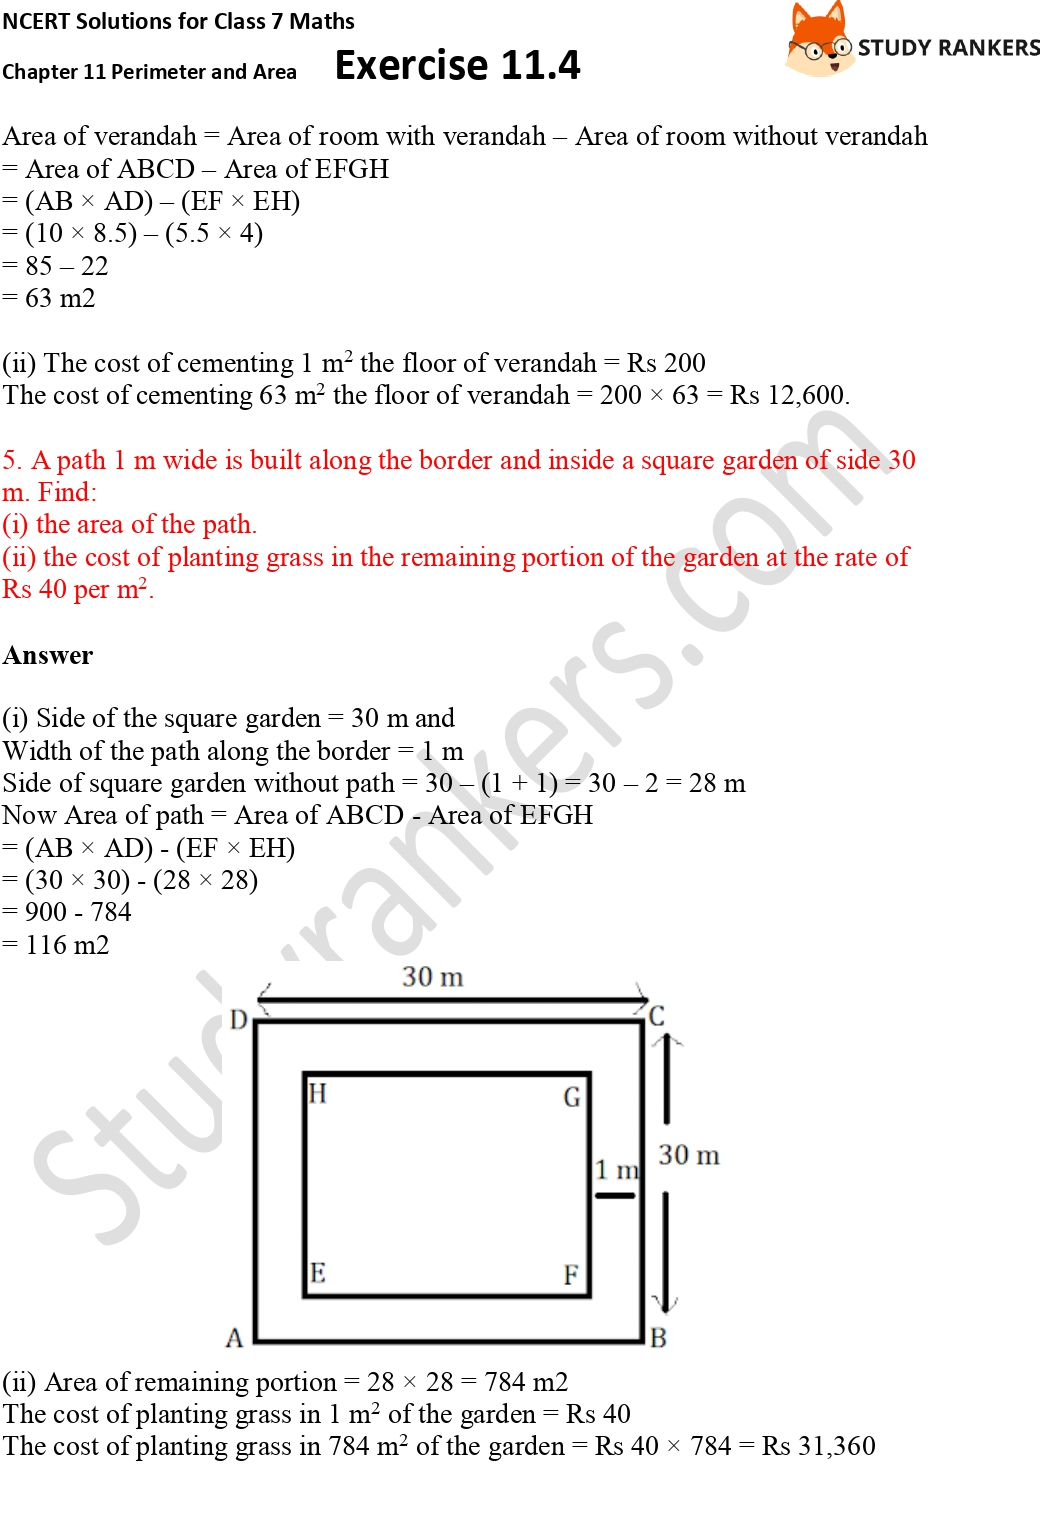 NCERT Solutions for Class 7 Maths Ch 11 Perimeter and Area Exercise 11.4 Part 3